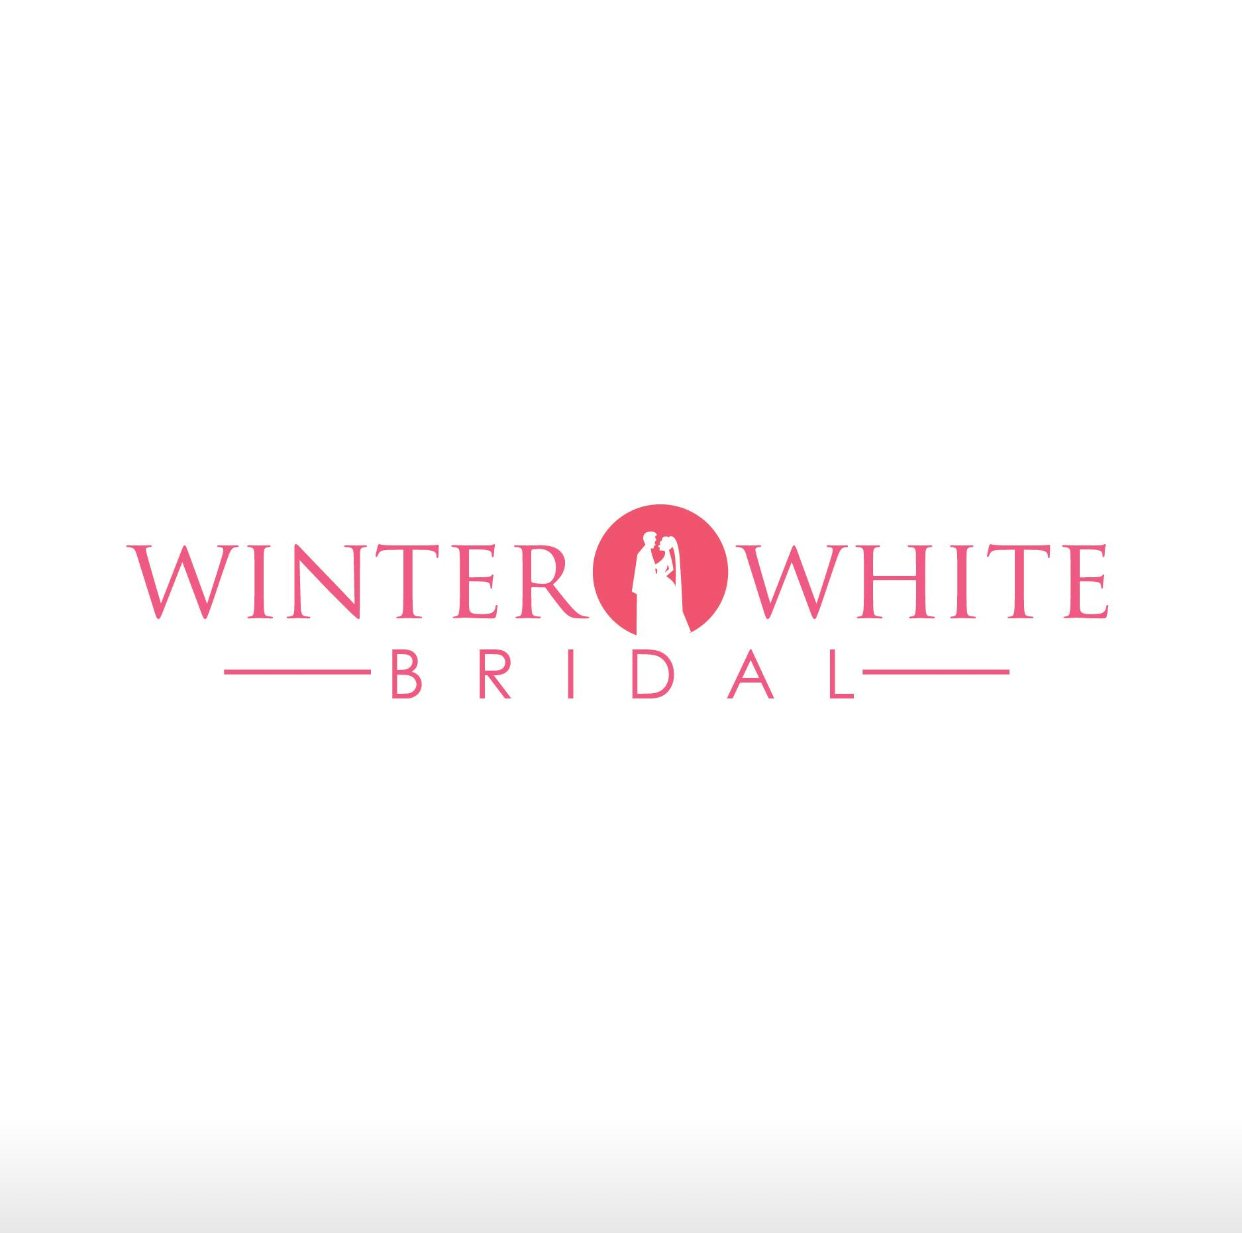 Winter White Bridal On Twitter First Night Gift Ideas For Her